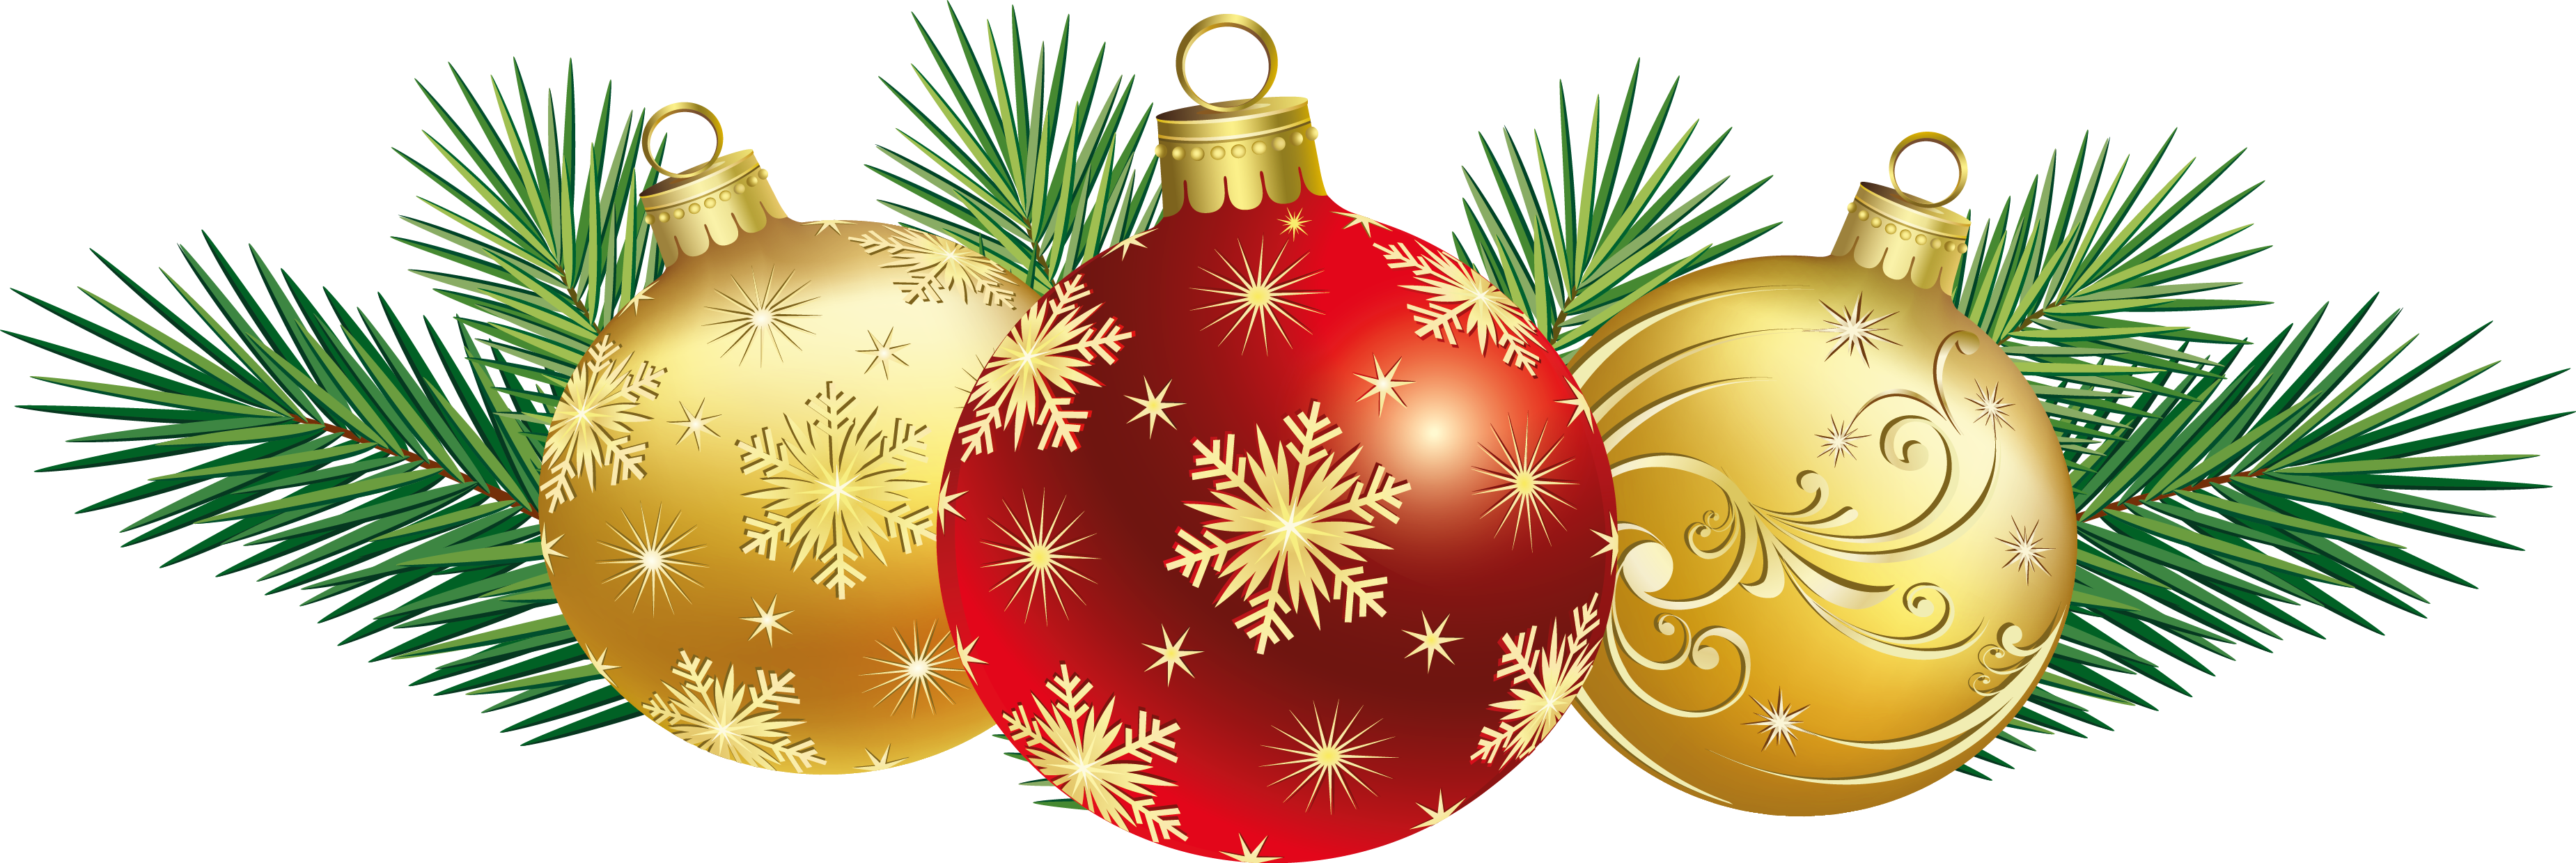 Free christmas clipart png picture transparent Free Christmas Decorations Cliparts, Download Free Clip Art, Free ... picture transparent